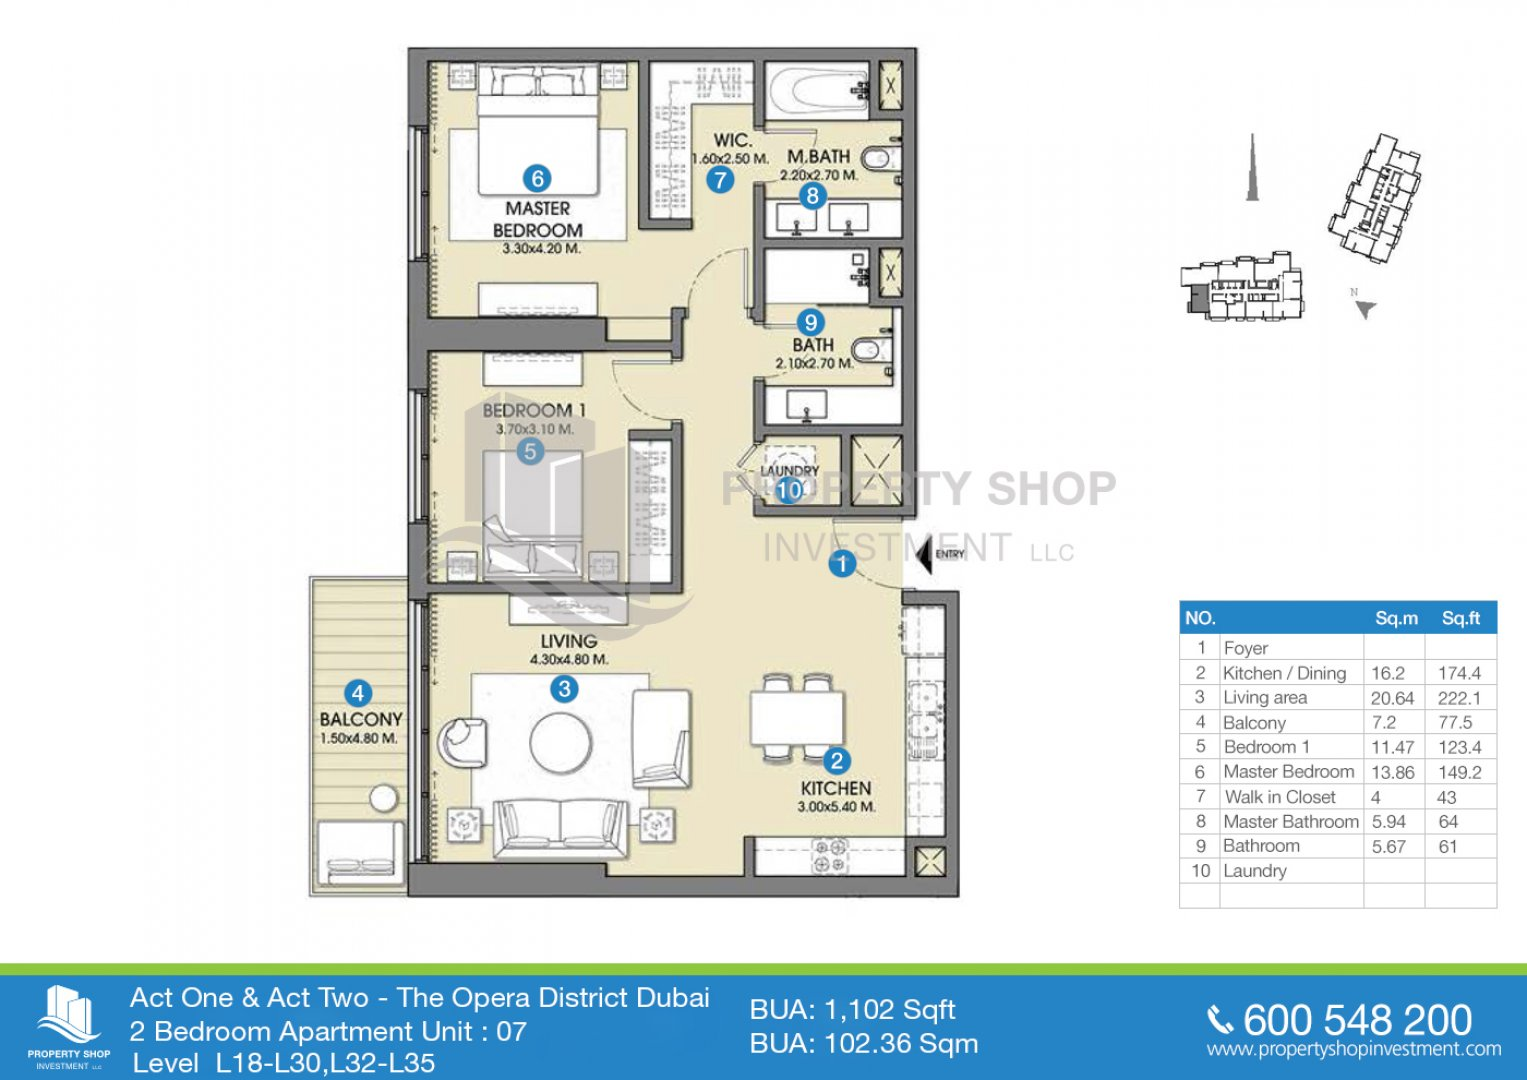 2 bedroom-unit-07-bua-1102-sqft-act one-and-two-dubai